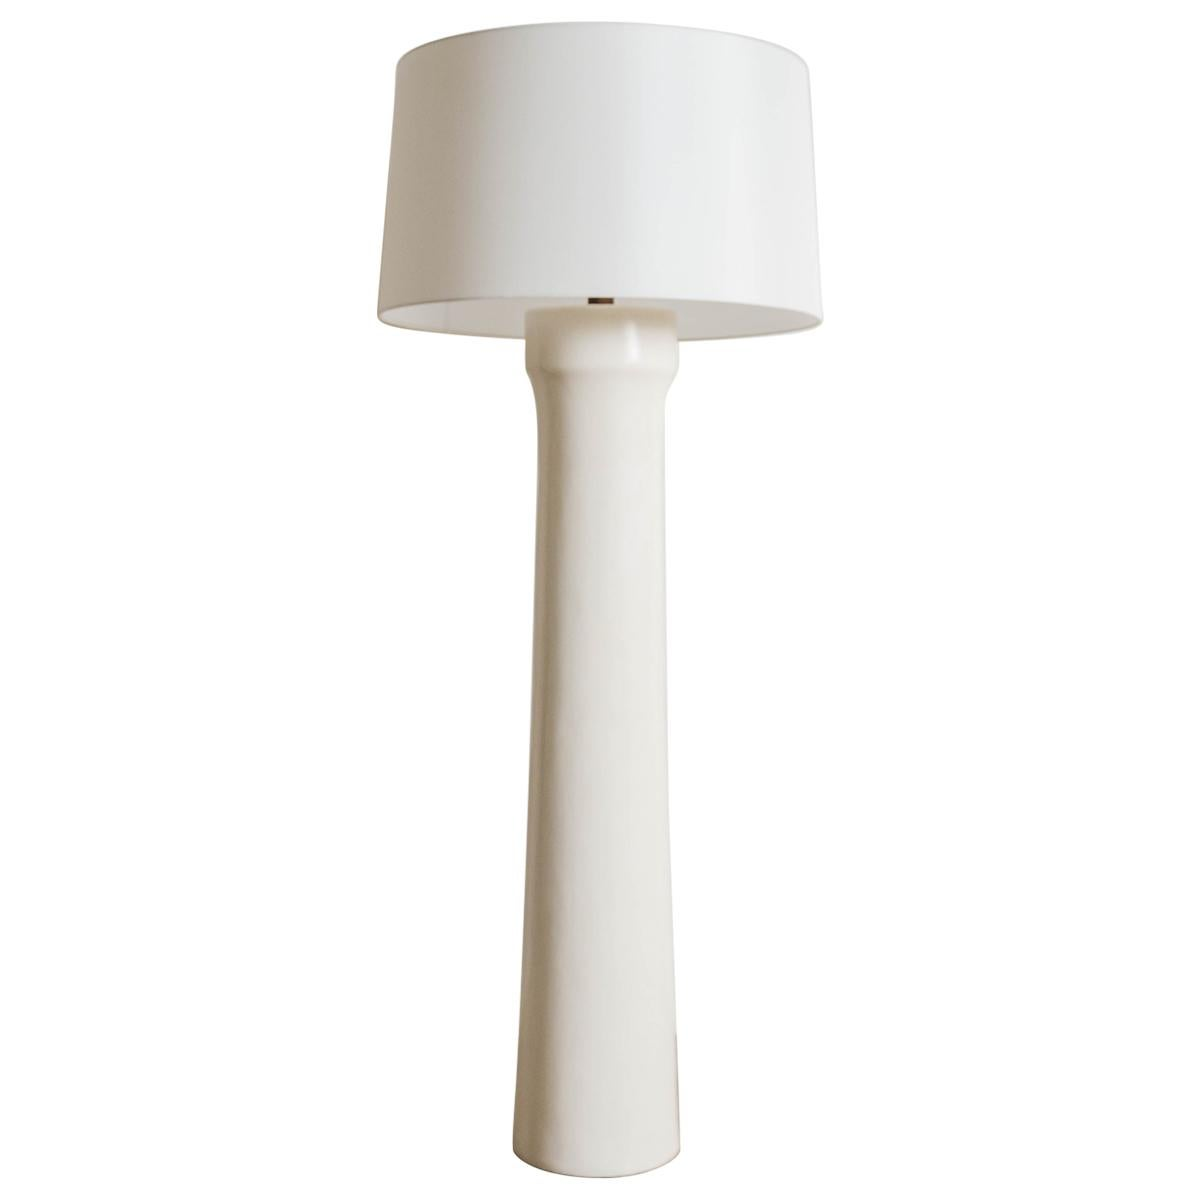 Contemporary Cream Lacquer Dong Shan Floor Lamp by Robert Kuo, Limited Edition